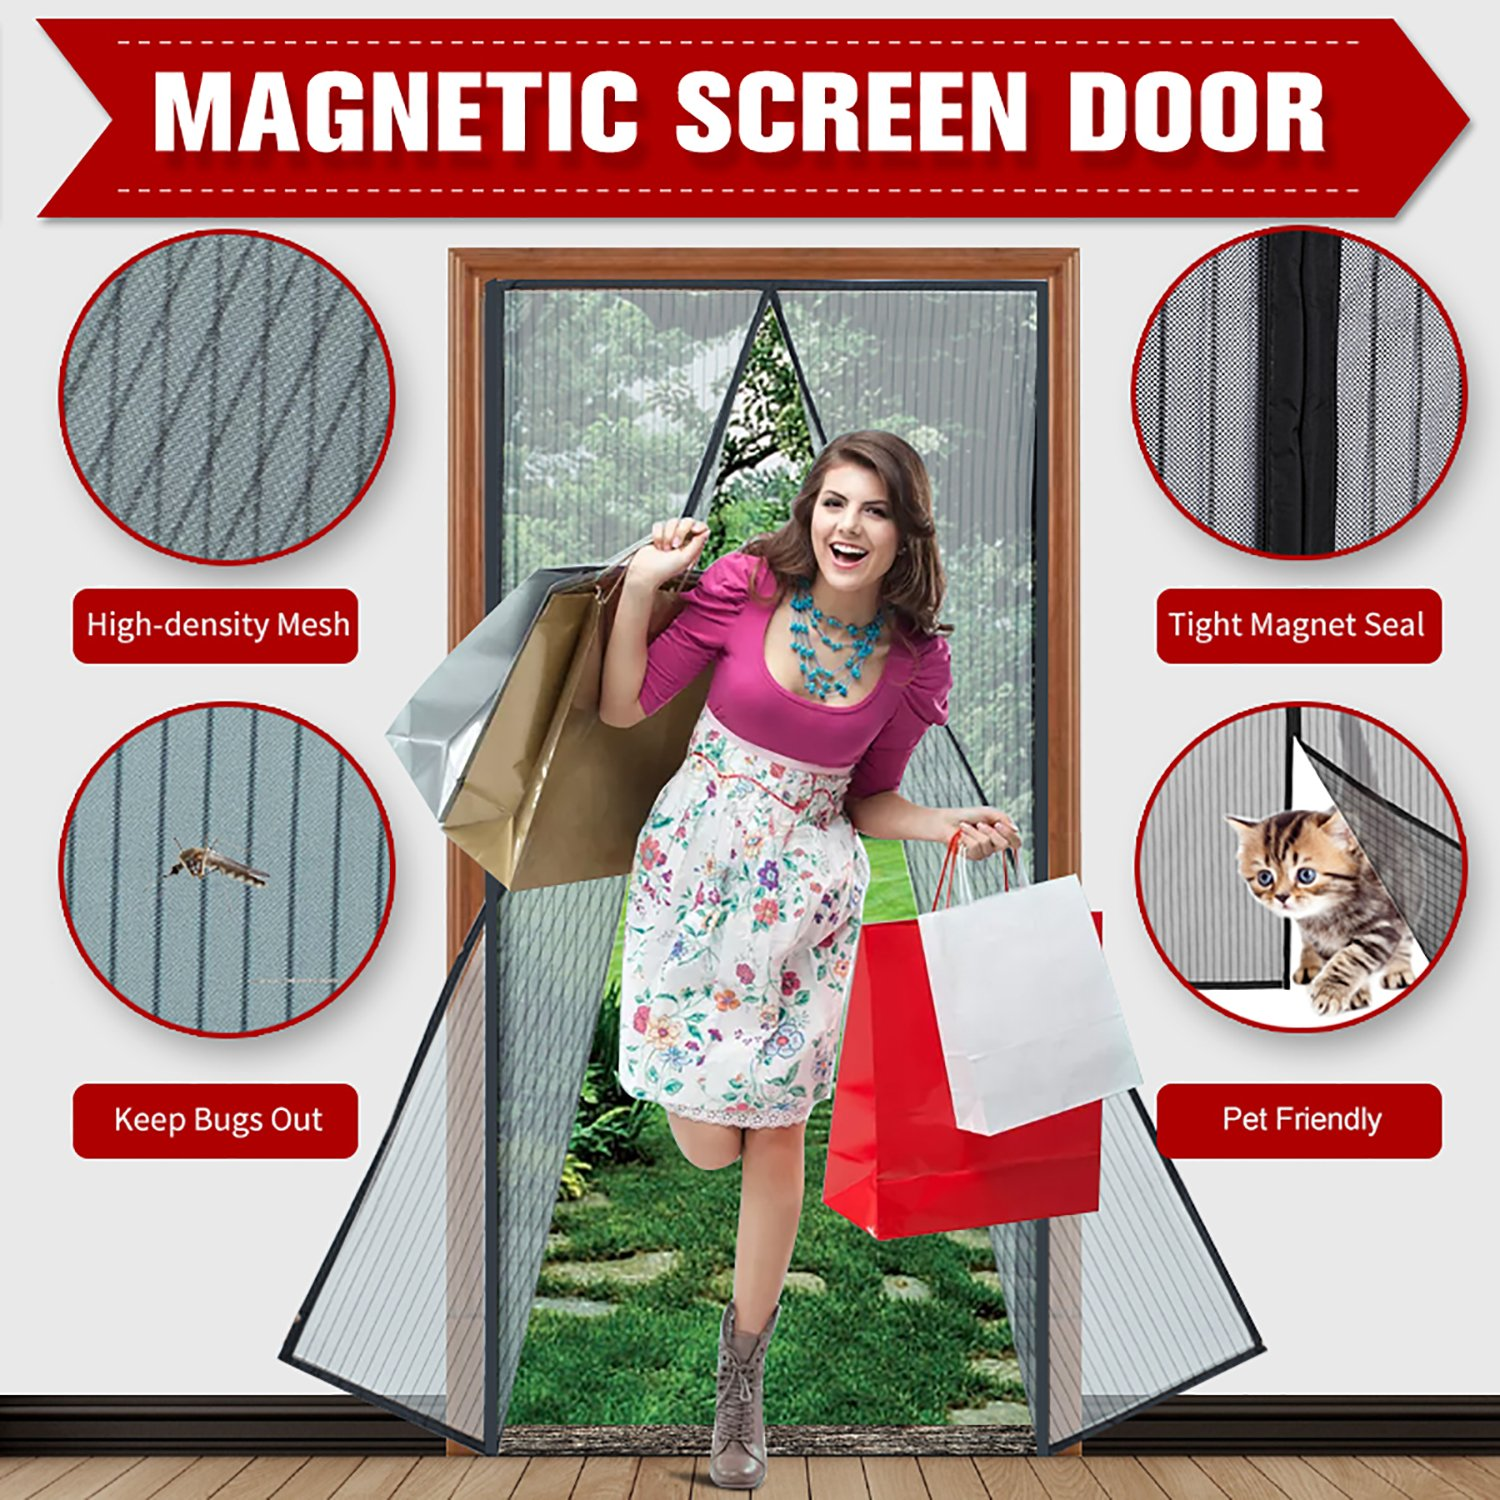 "Magnetic Screen Door 39""x 83"" with Heavy Duty Reinforced Mesh Curtain and Full Frame Velcro, Fits Door Size up to 36''X82'' Max- Black by PhoenixReal"